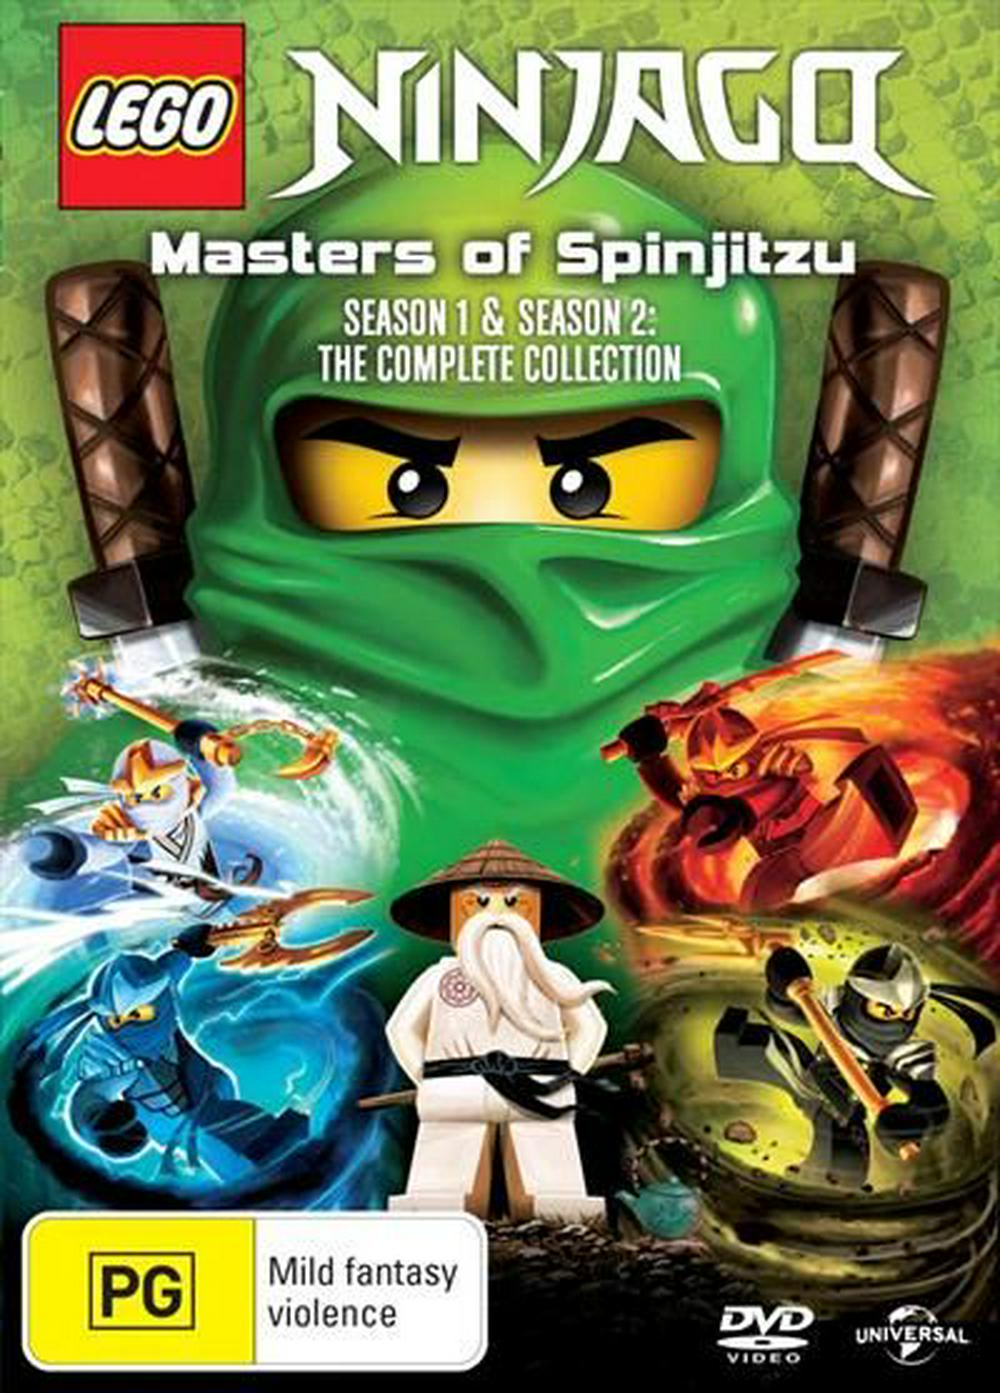 LEGO Ninjago Masters of Spinjitzu Season 2 123Movies